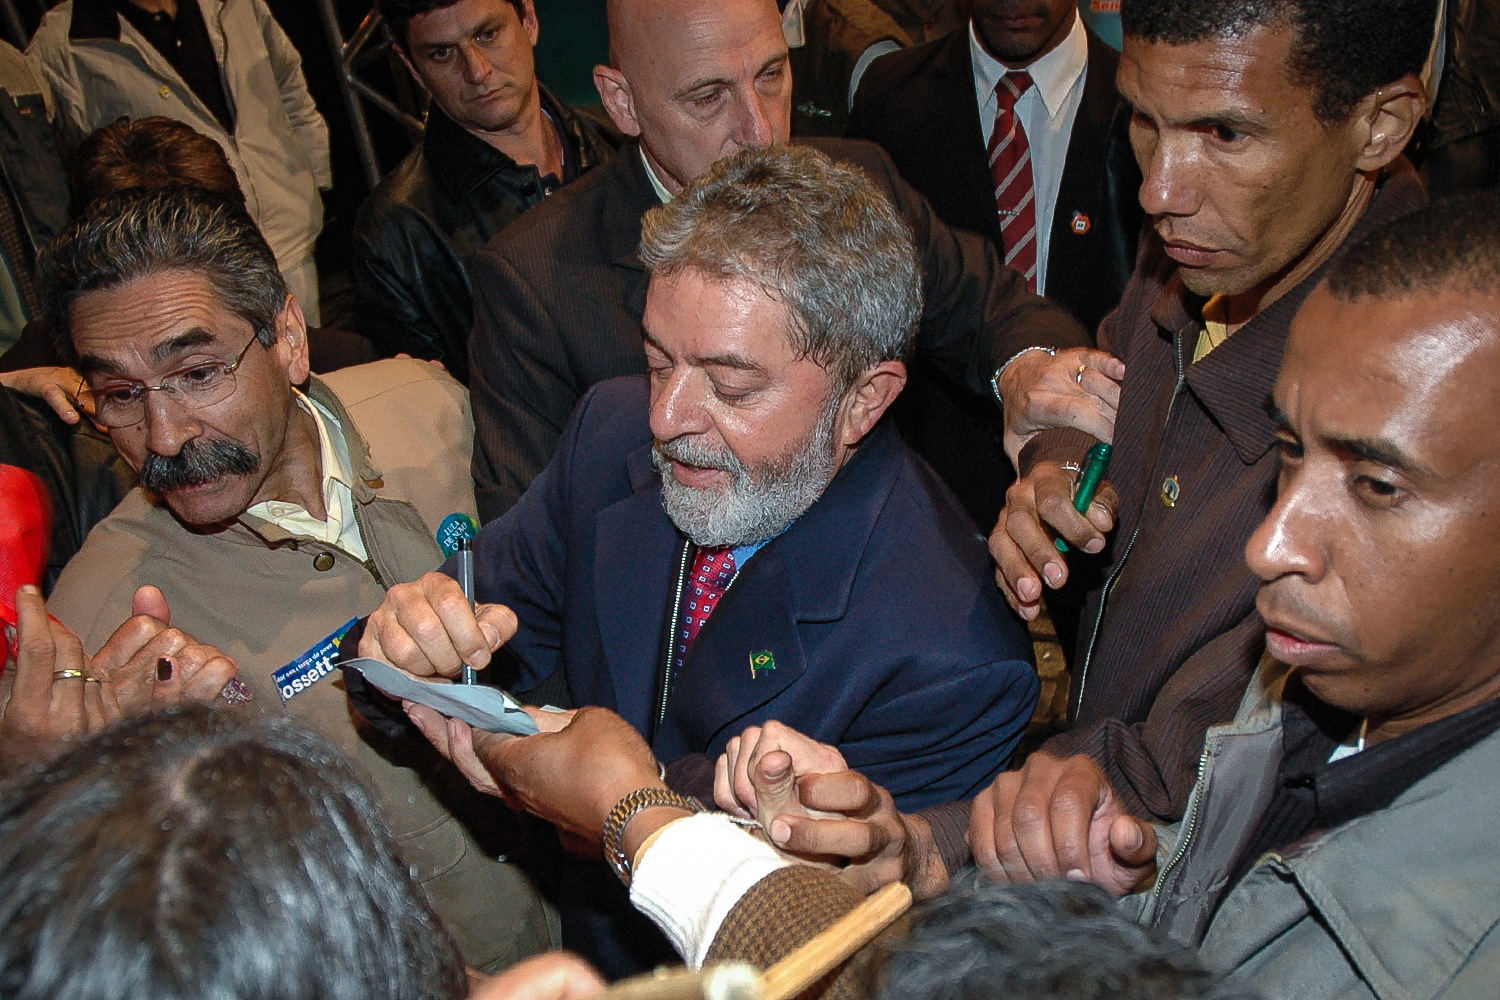 Brazil's (former) President and candidate for reelection Luiz Inacio Lula da Silva (C) interacts with the public after delivering a speech during a campaign rally in Porto Alegre, Brazil, 25 September 2006.